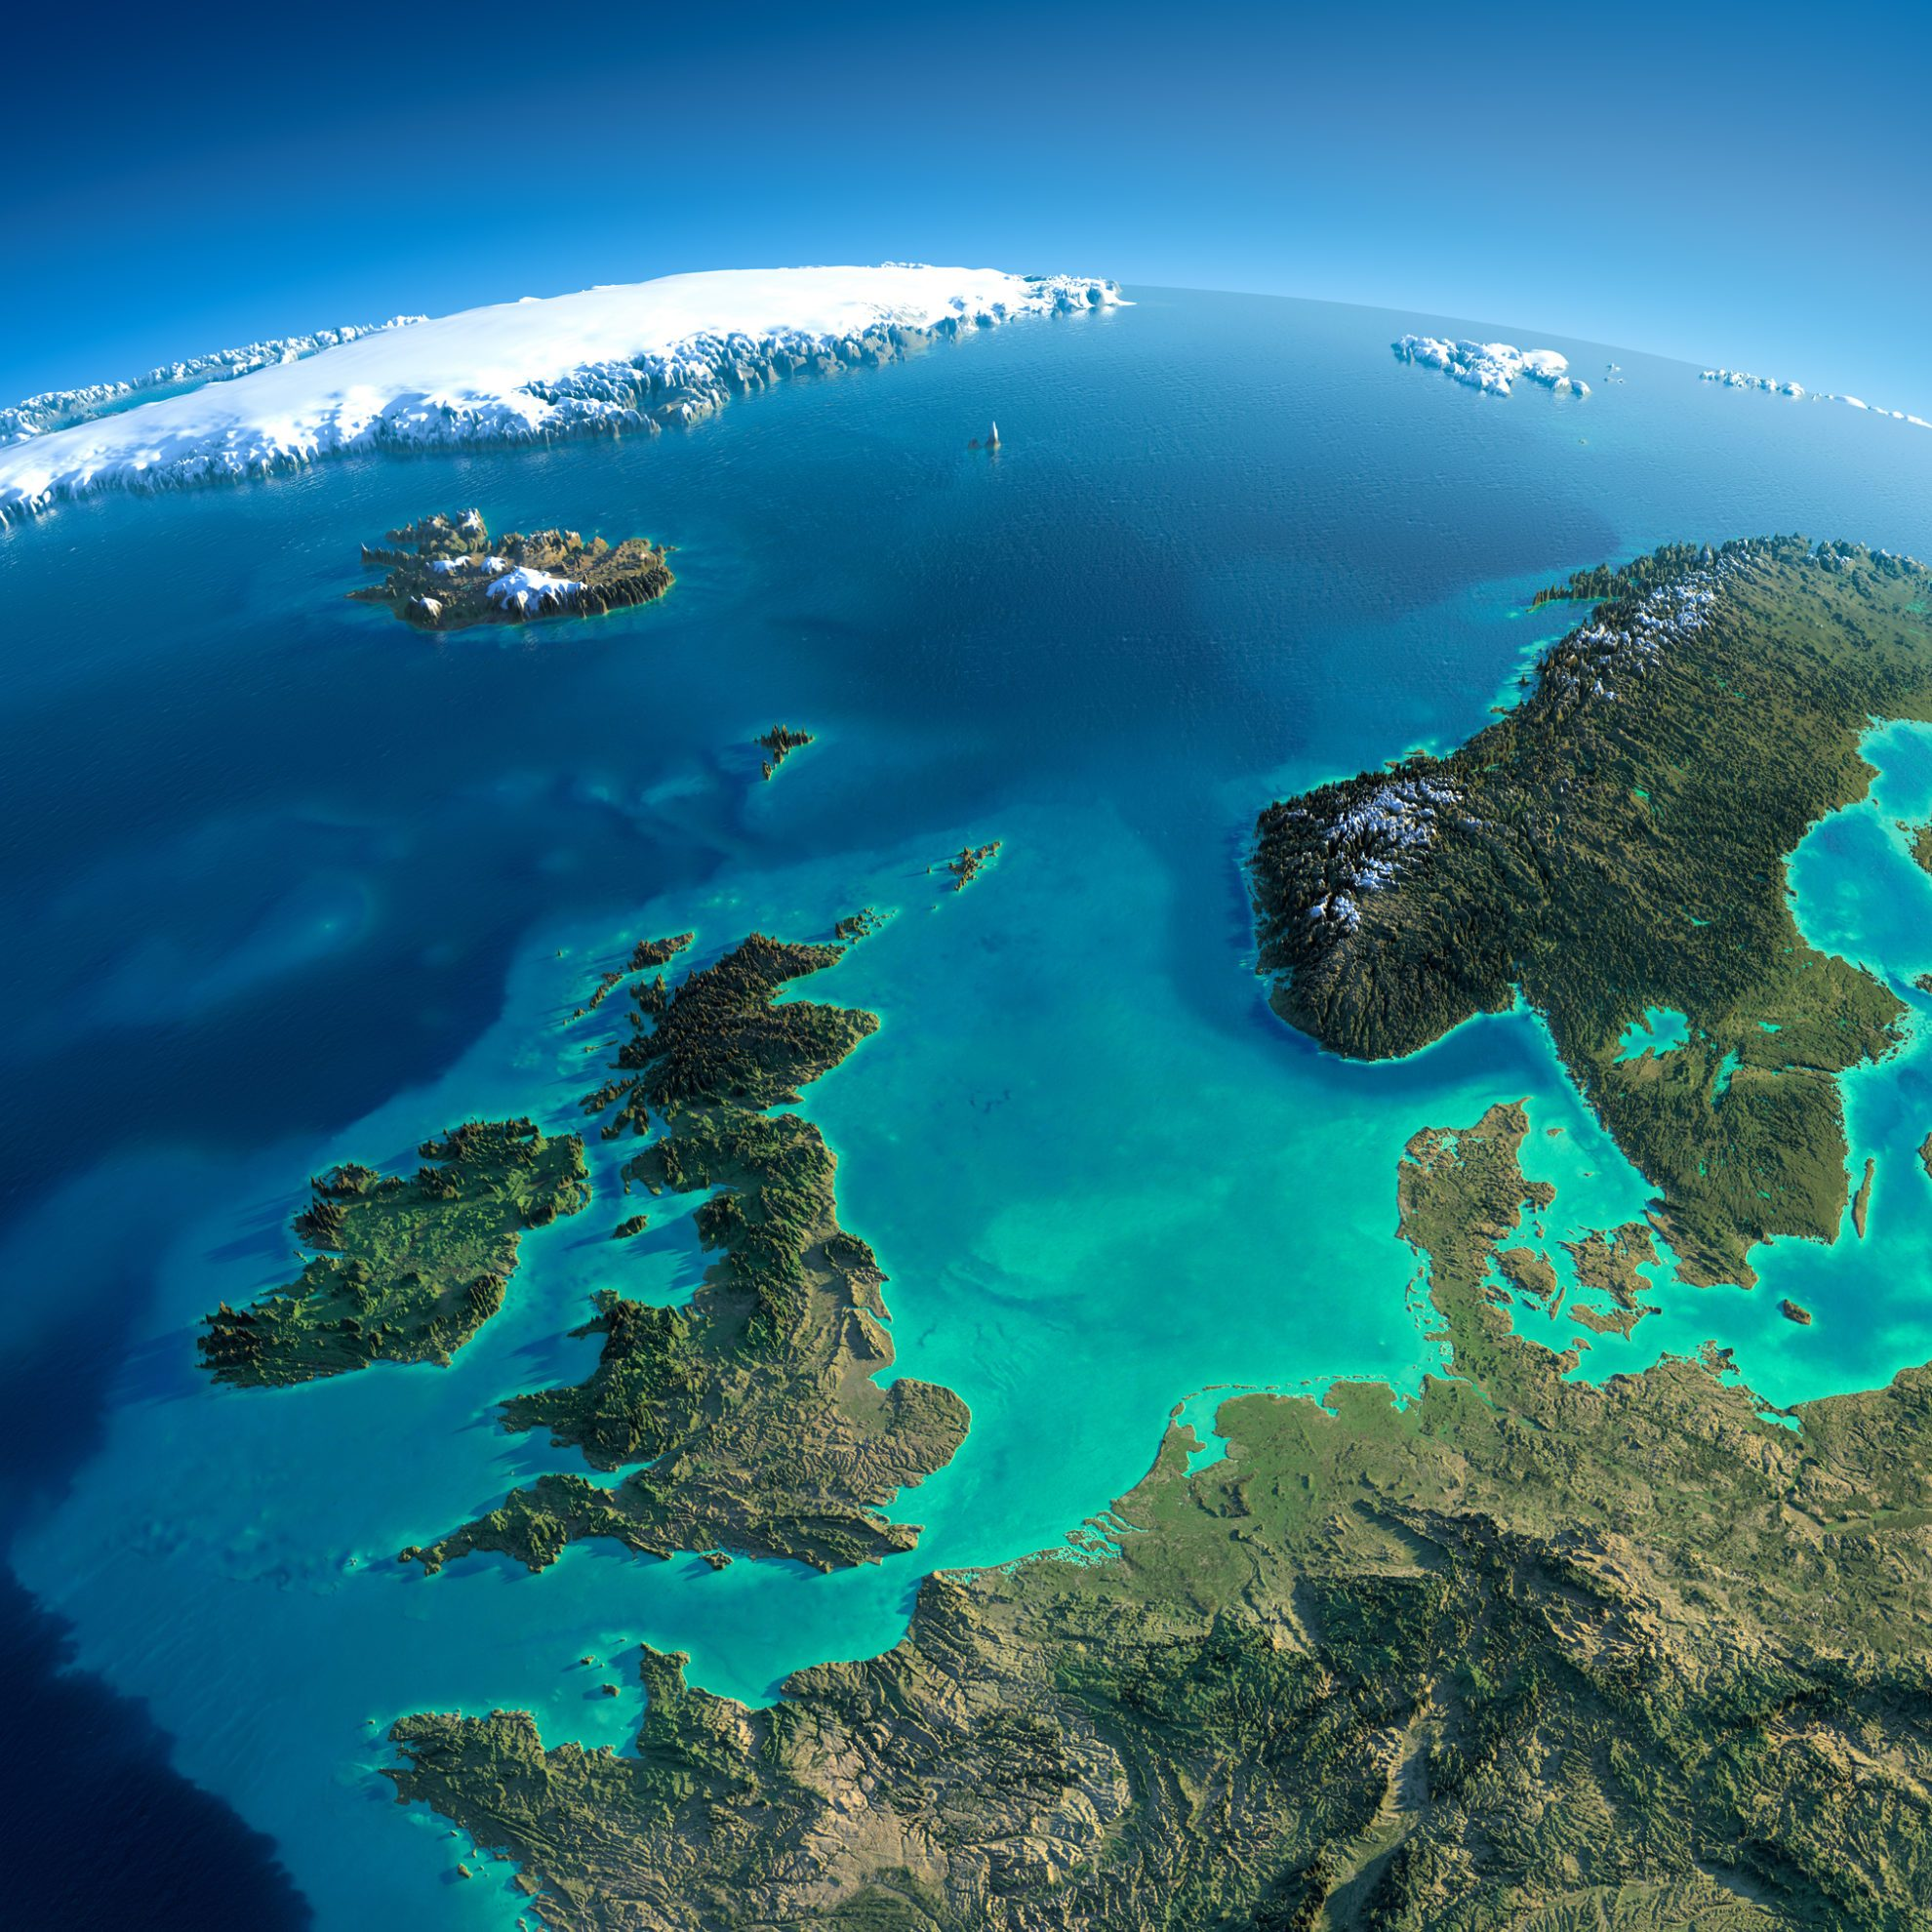 Highly detailed planet Earth in the morning. Exaggerated precise relief lit morning sun. Detailed Earth. United Kingdom and the North Sea. Elements of this image furnished by NASA